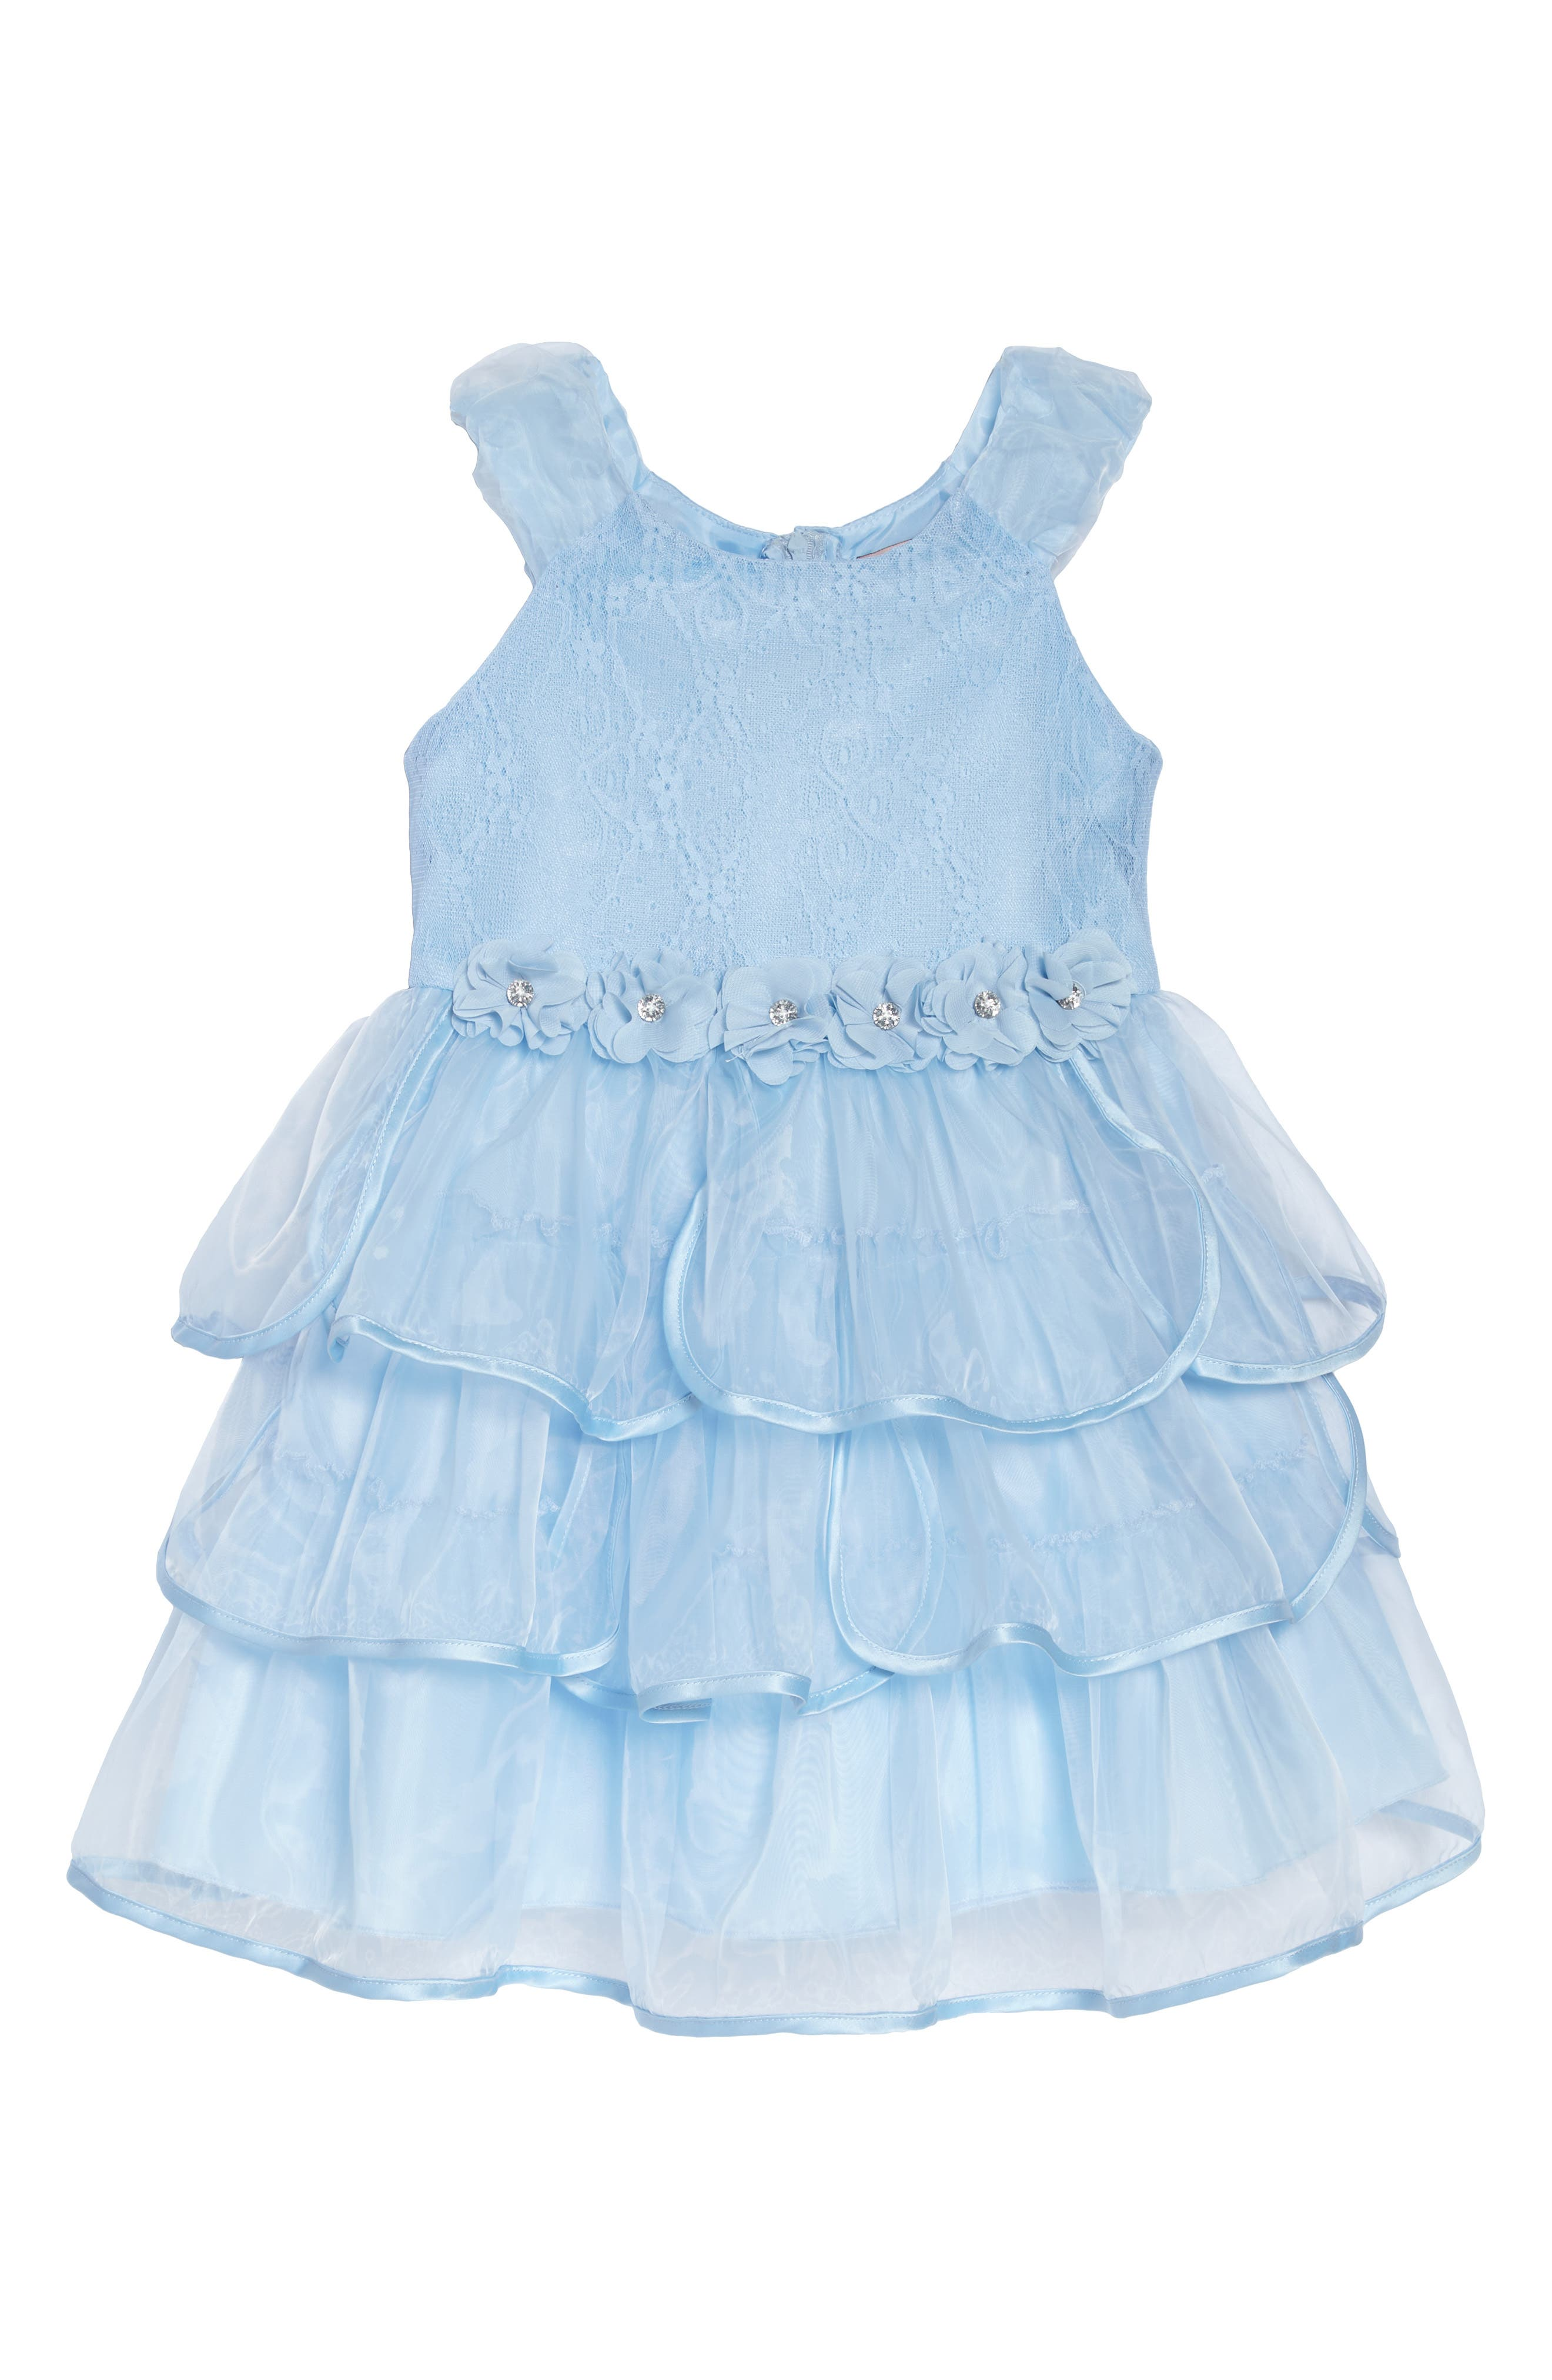 Nanette Lepore Tiered Organza Party Dress (Toddler Girls & Little Girls)